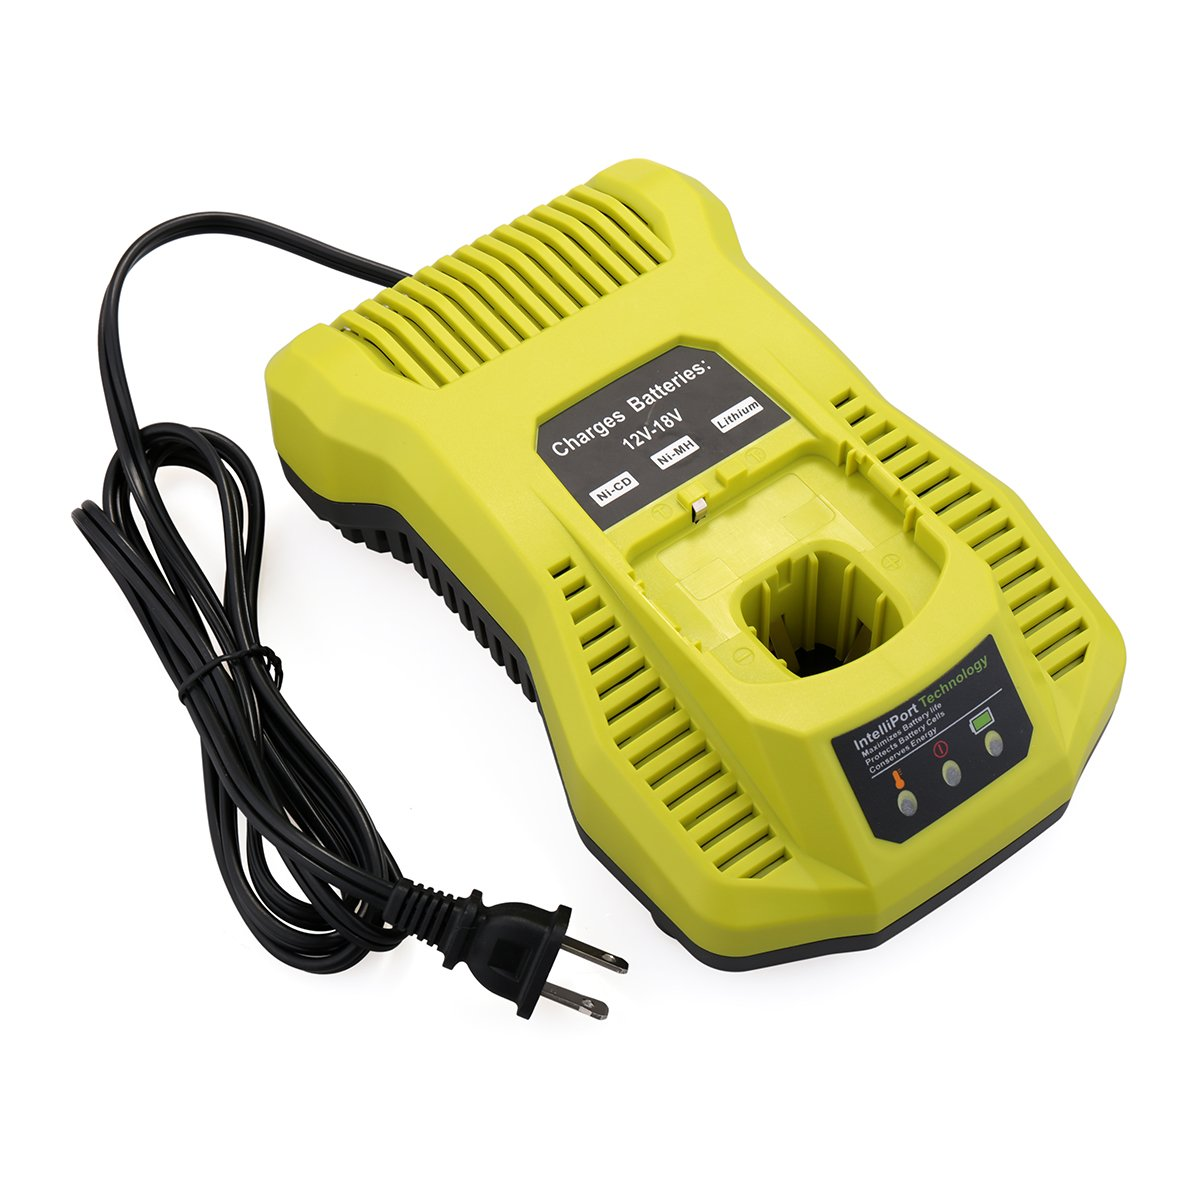 Biswaye Dual Chemistry Battery Charger P117 P118 for Ryobi 12V 18V One+ Plus NiCd NiMh Lithium Battery P100 P101 P102 P103 P105 P107 P108 P200 1400670